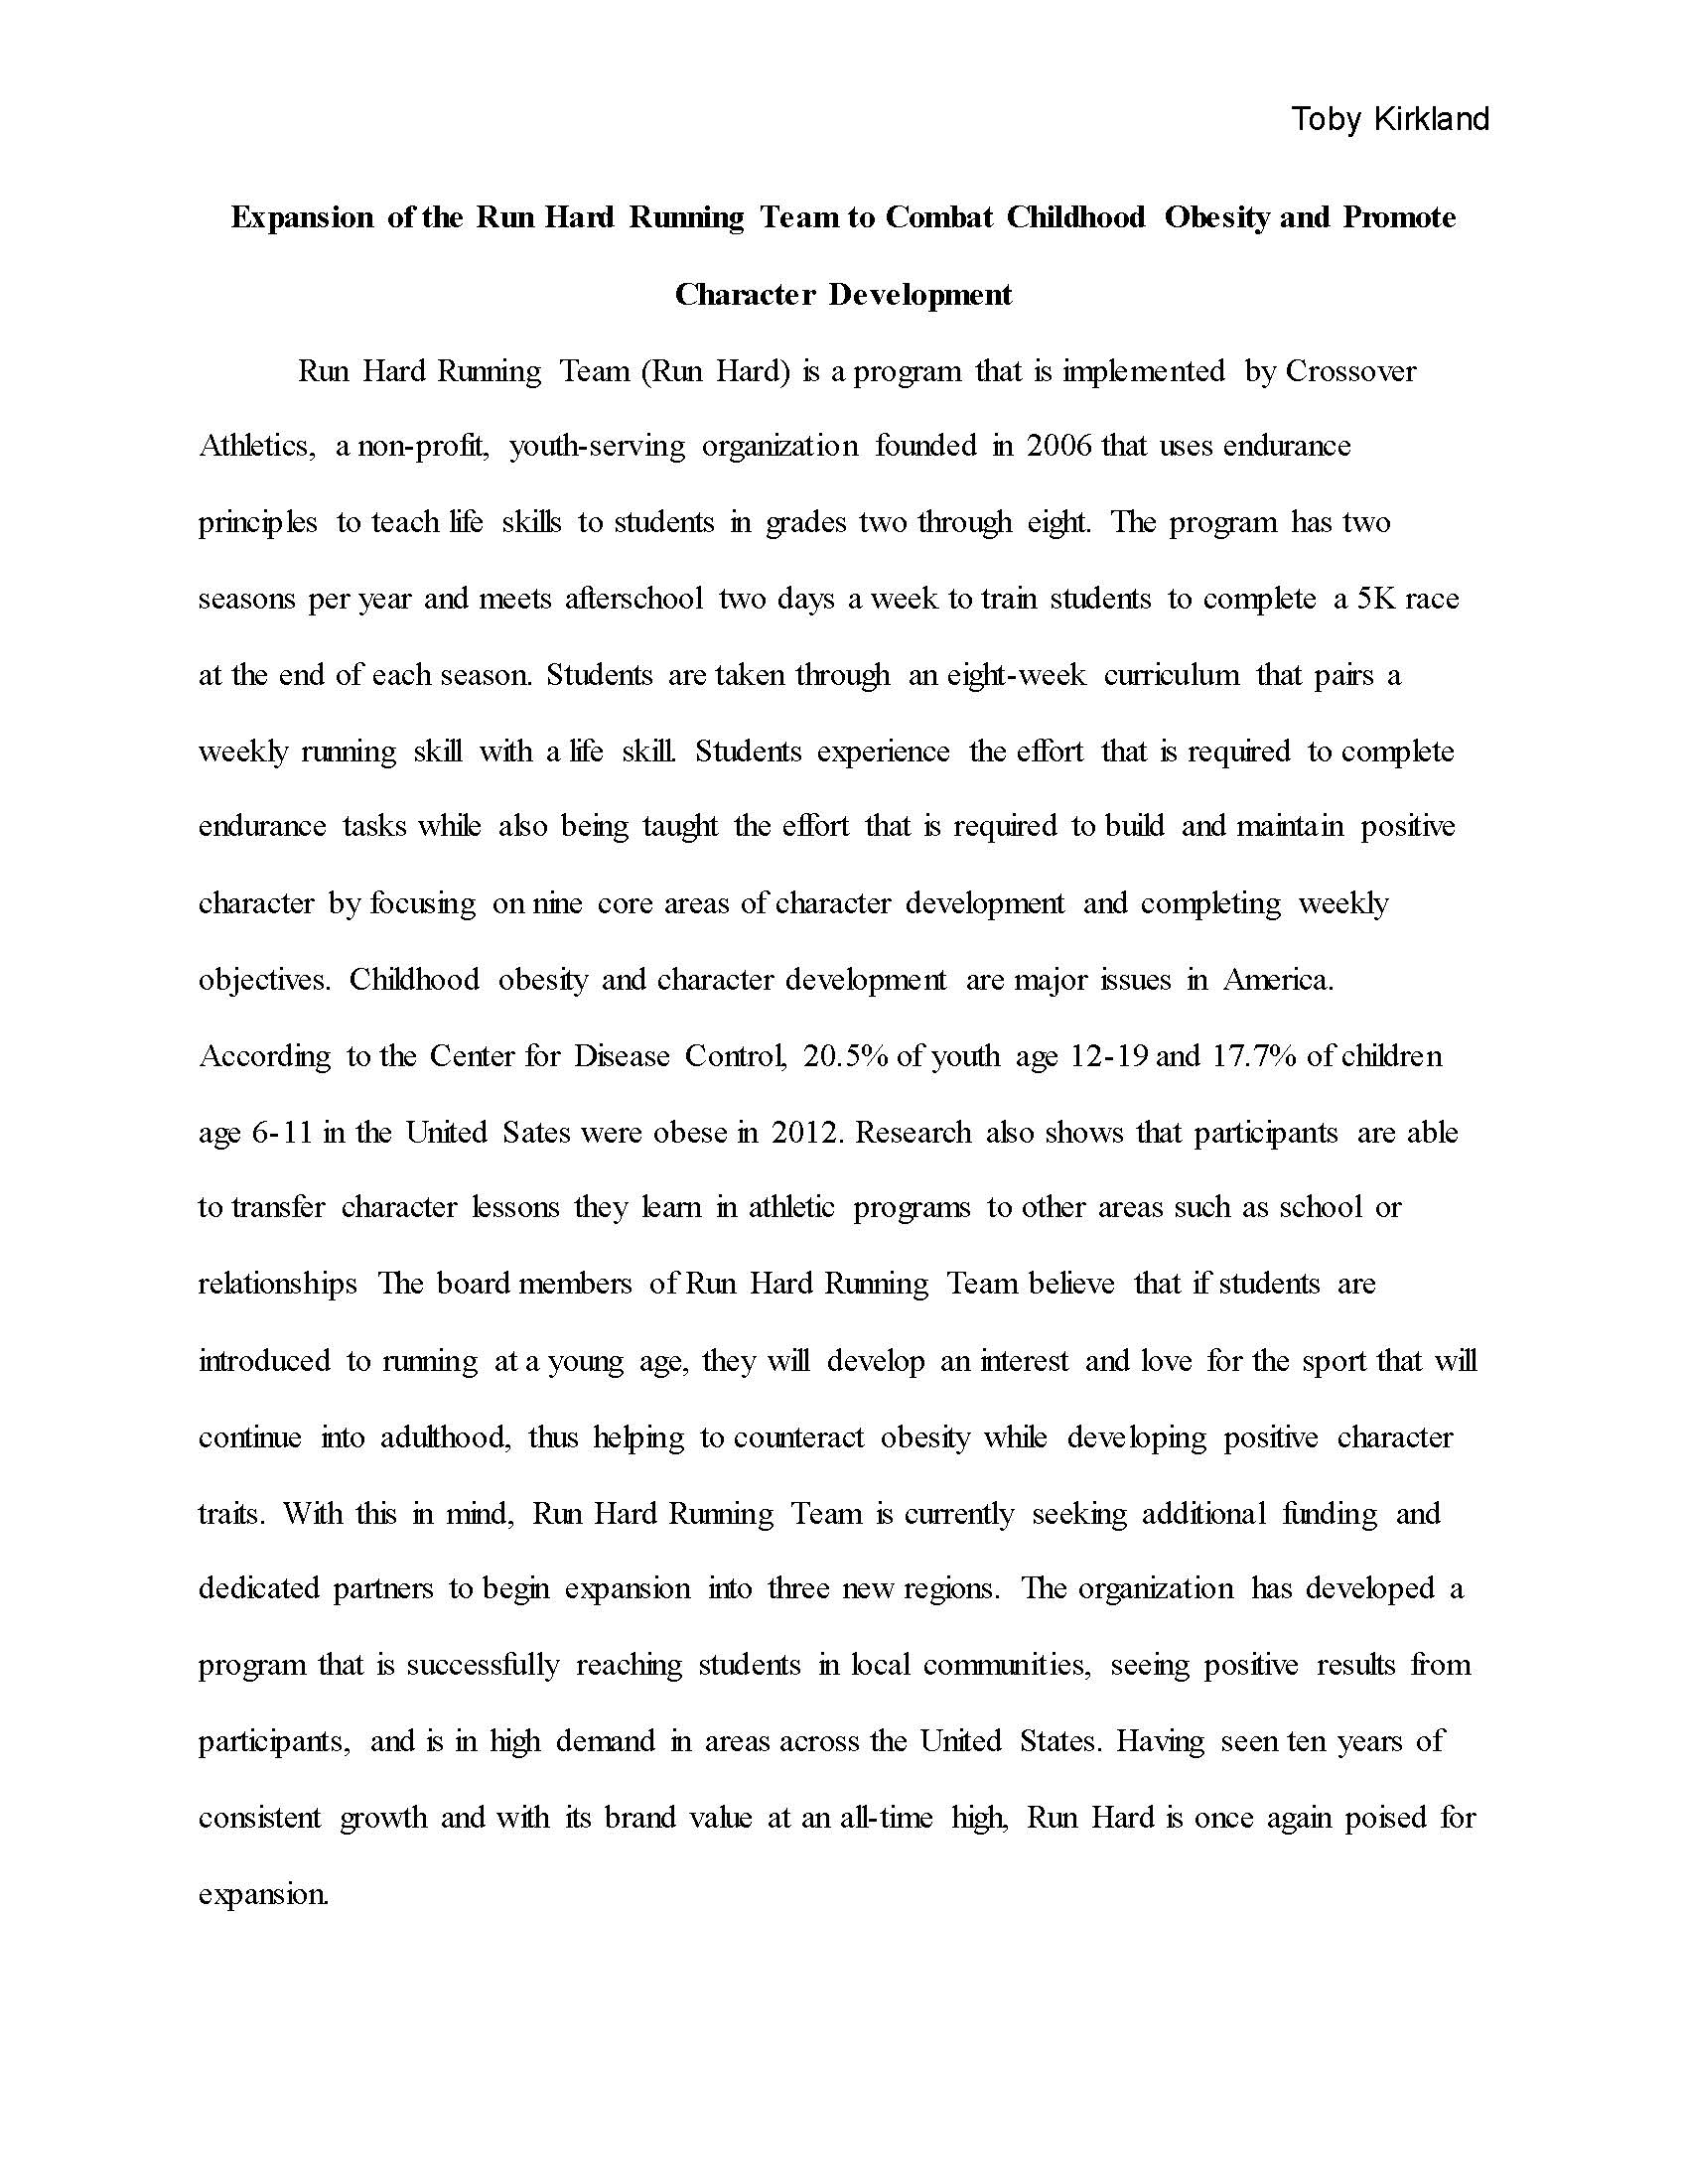 001 Toby Kirkland Final Grant Proposal Page 01 Research Paper Childhood Obesity Unique Example Full